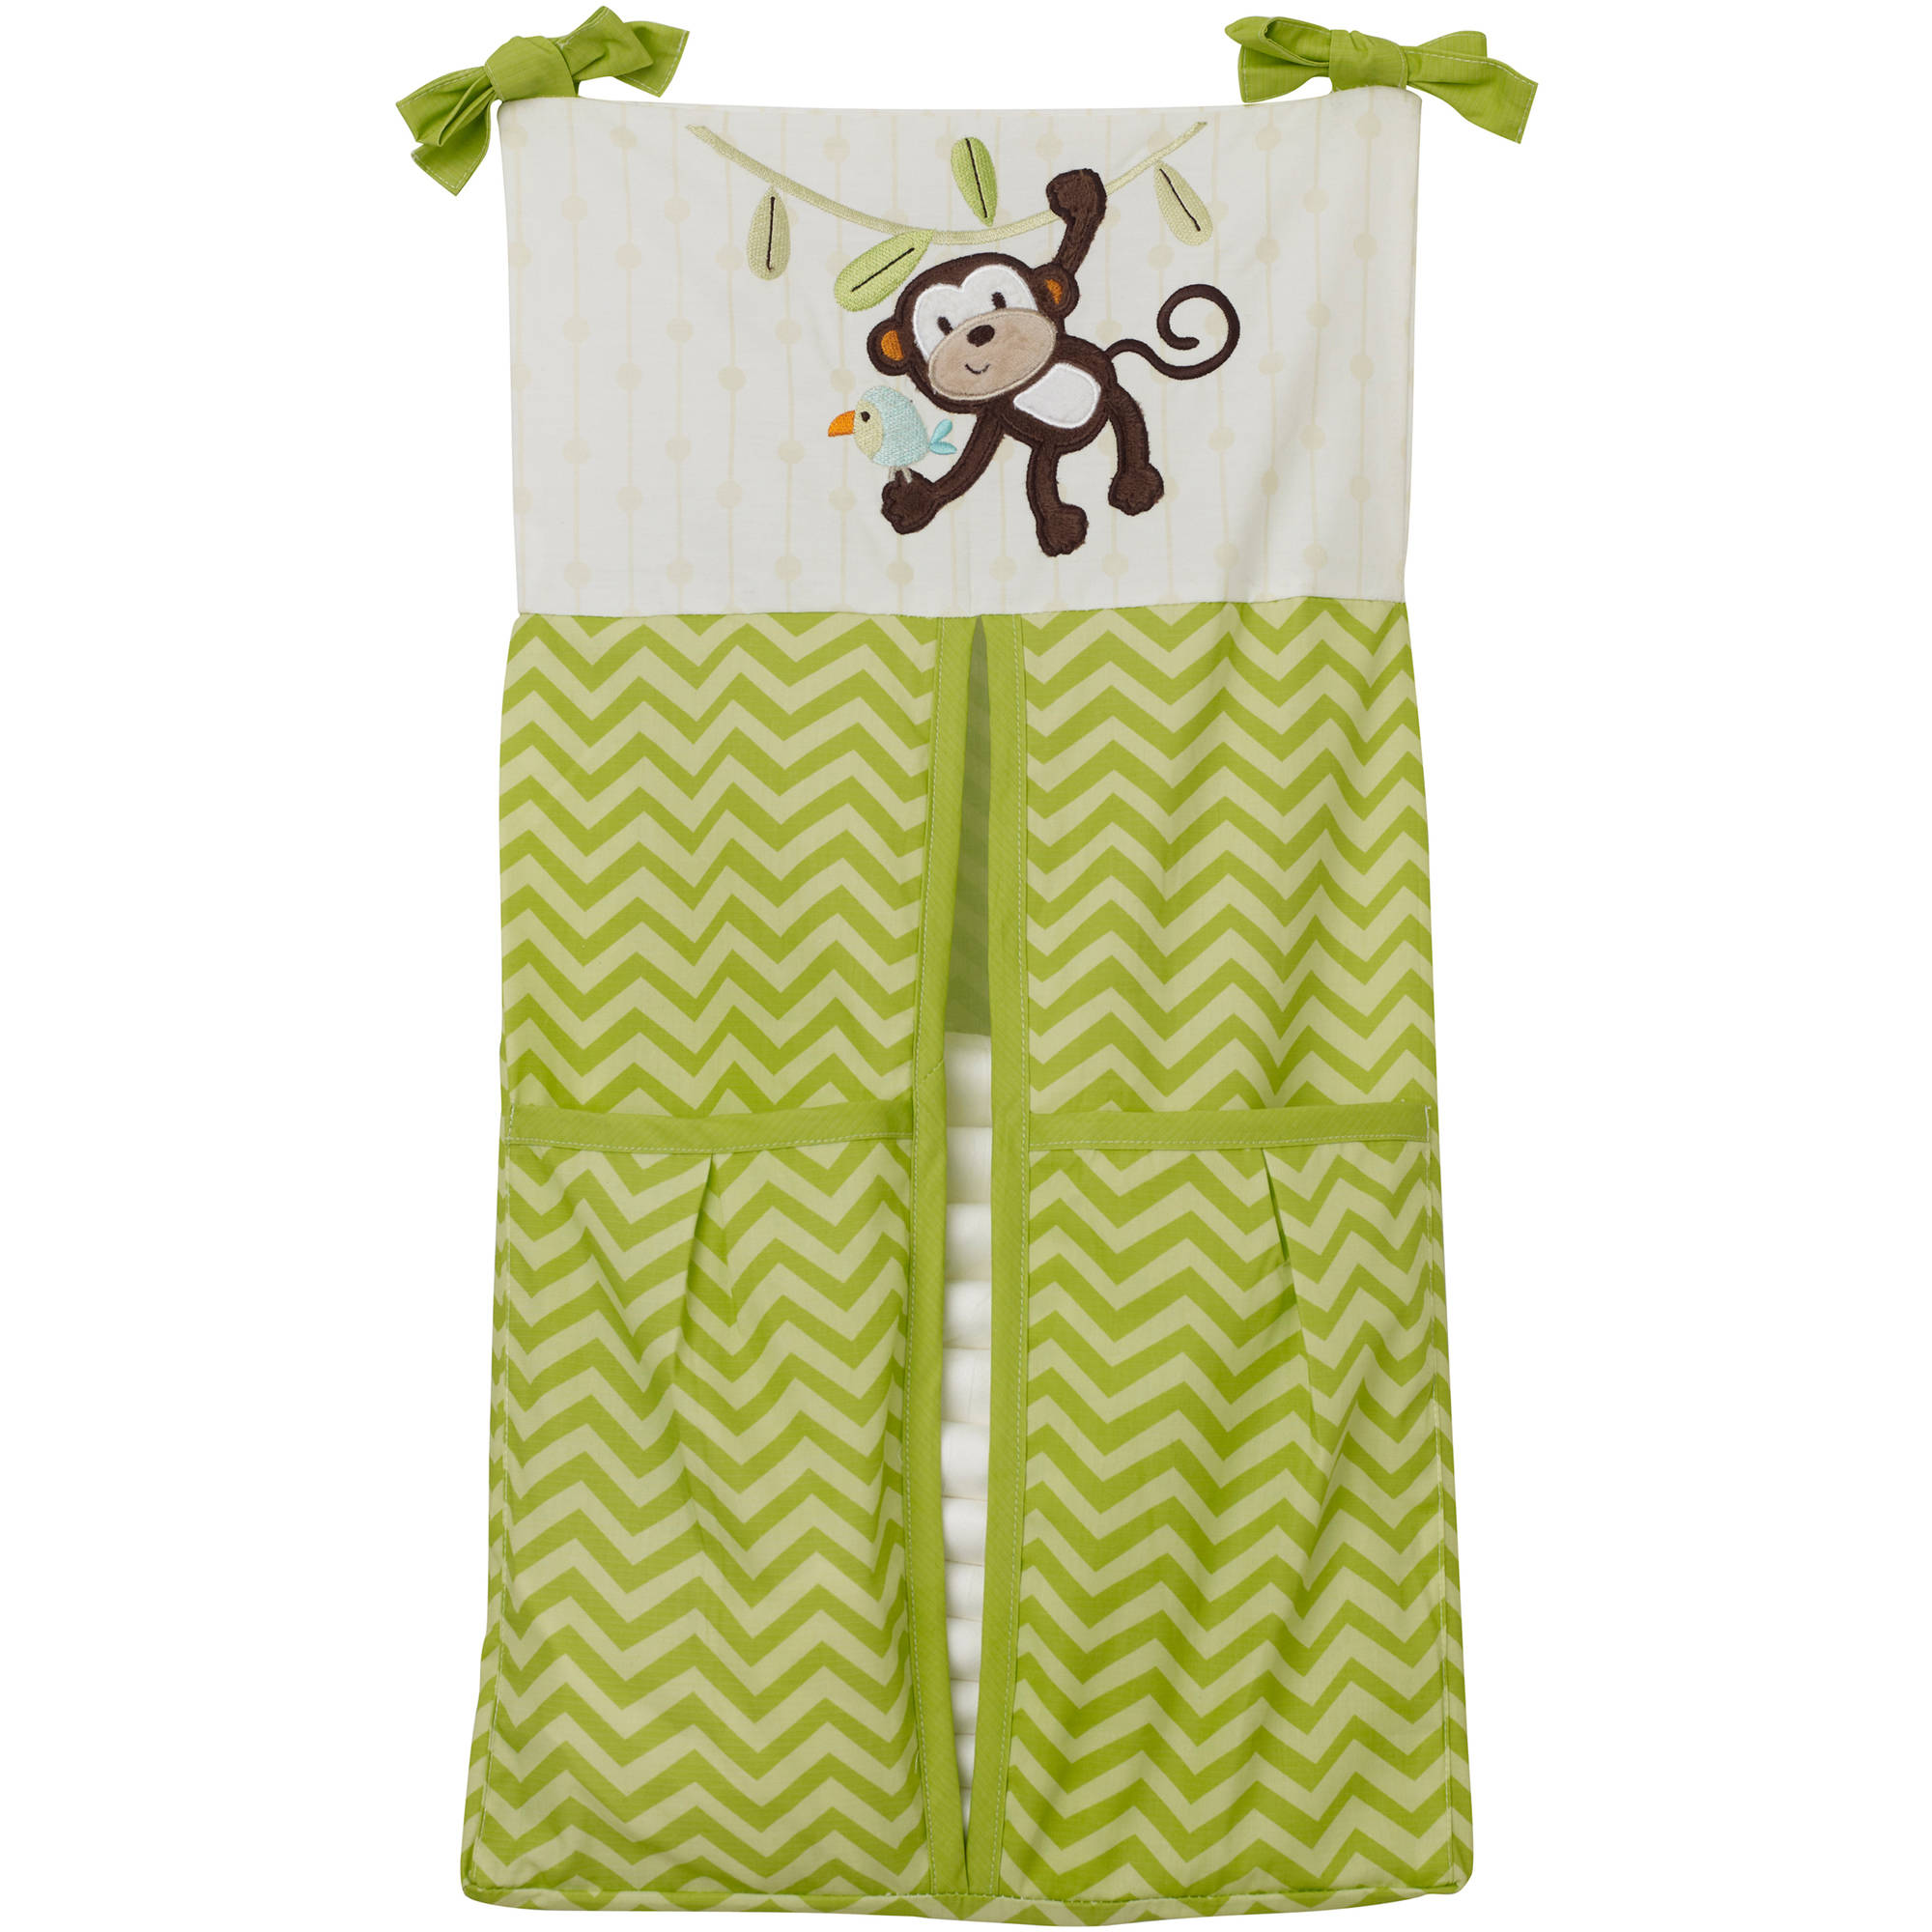 Garanimals Tribal Tales Diaper Stacker